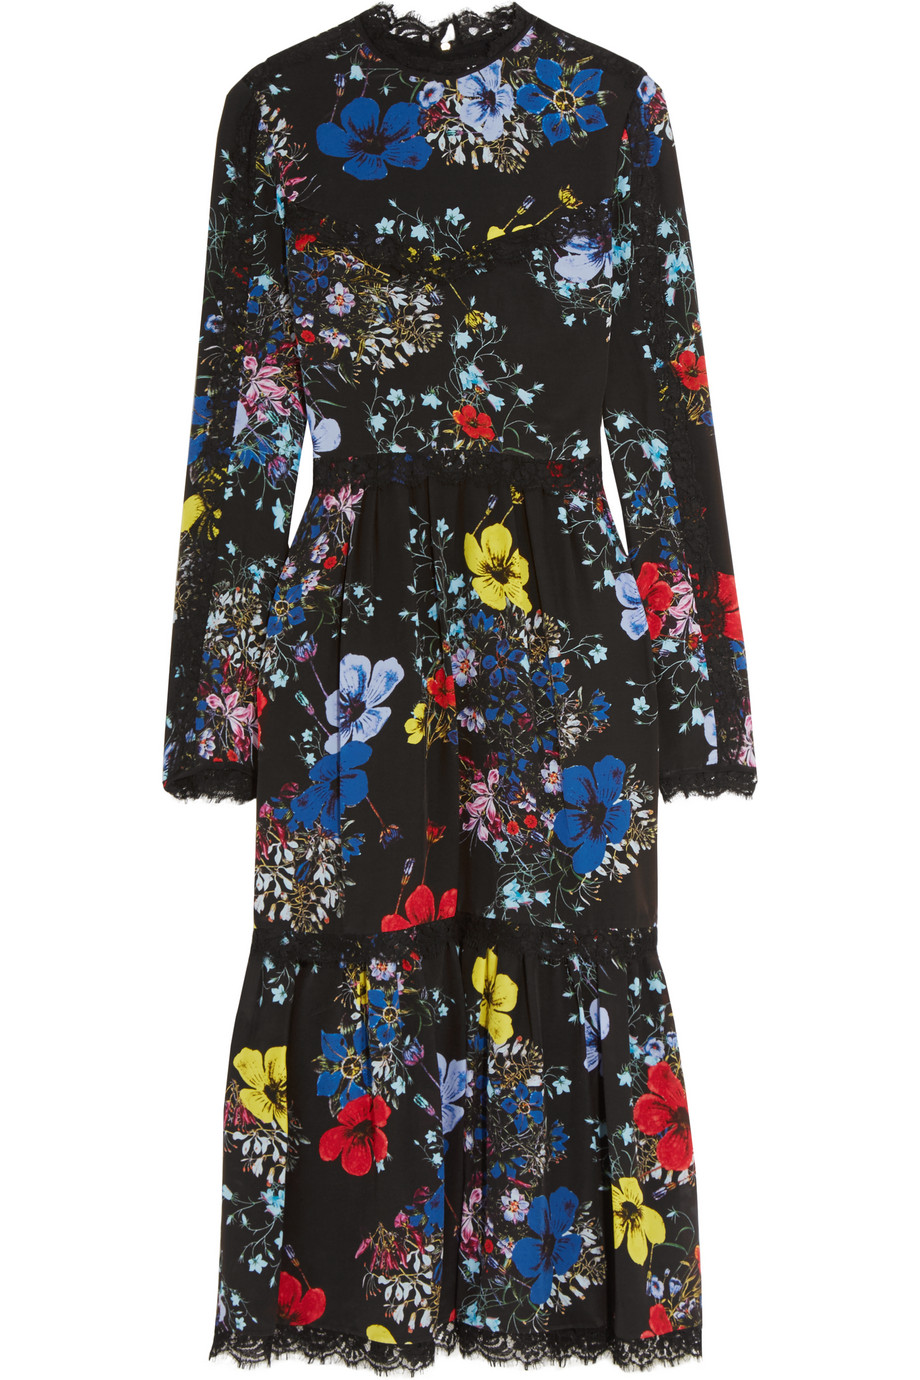 Erdem Georgie Lace-Trimmed Printed Silk Crepe De Chine Midi Dress, Black/Blue, Women's, Size: 8